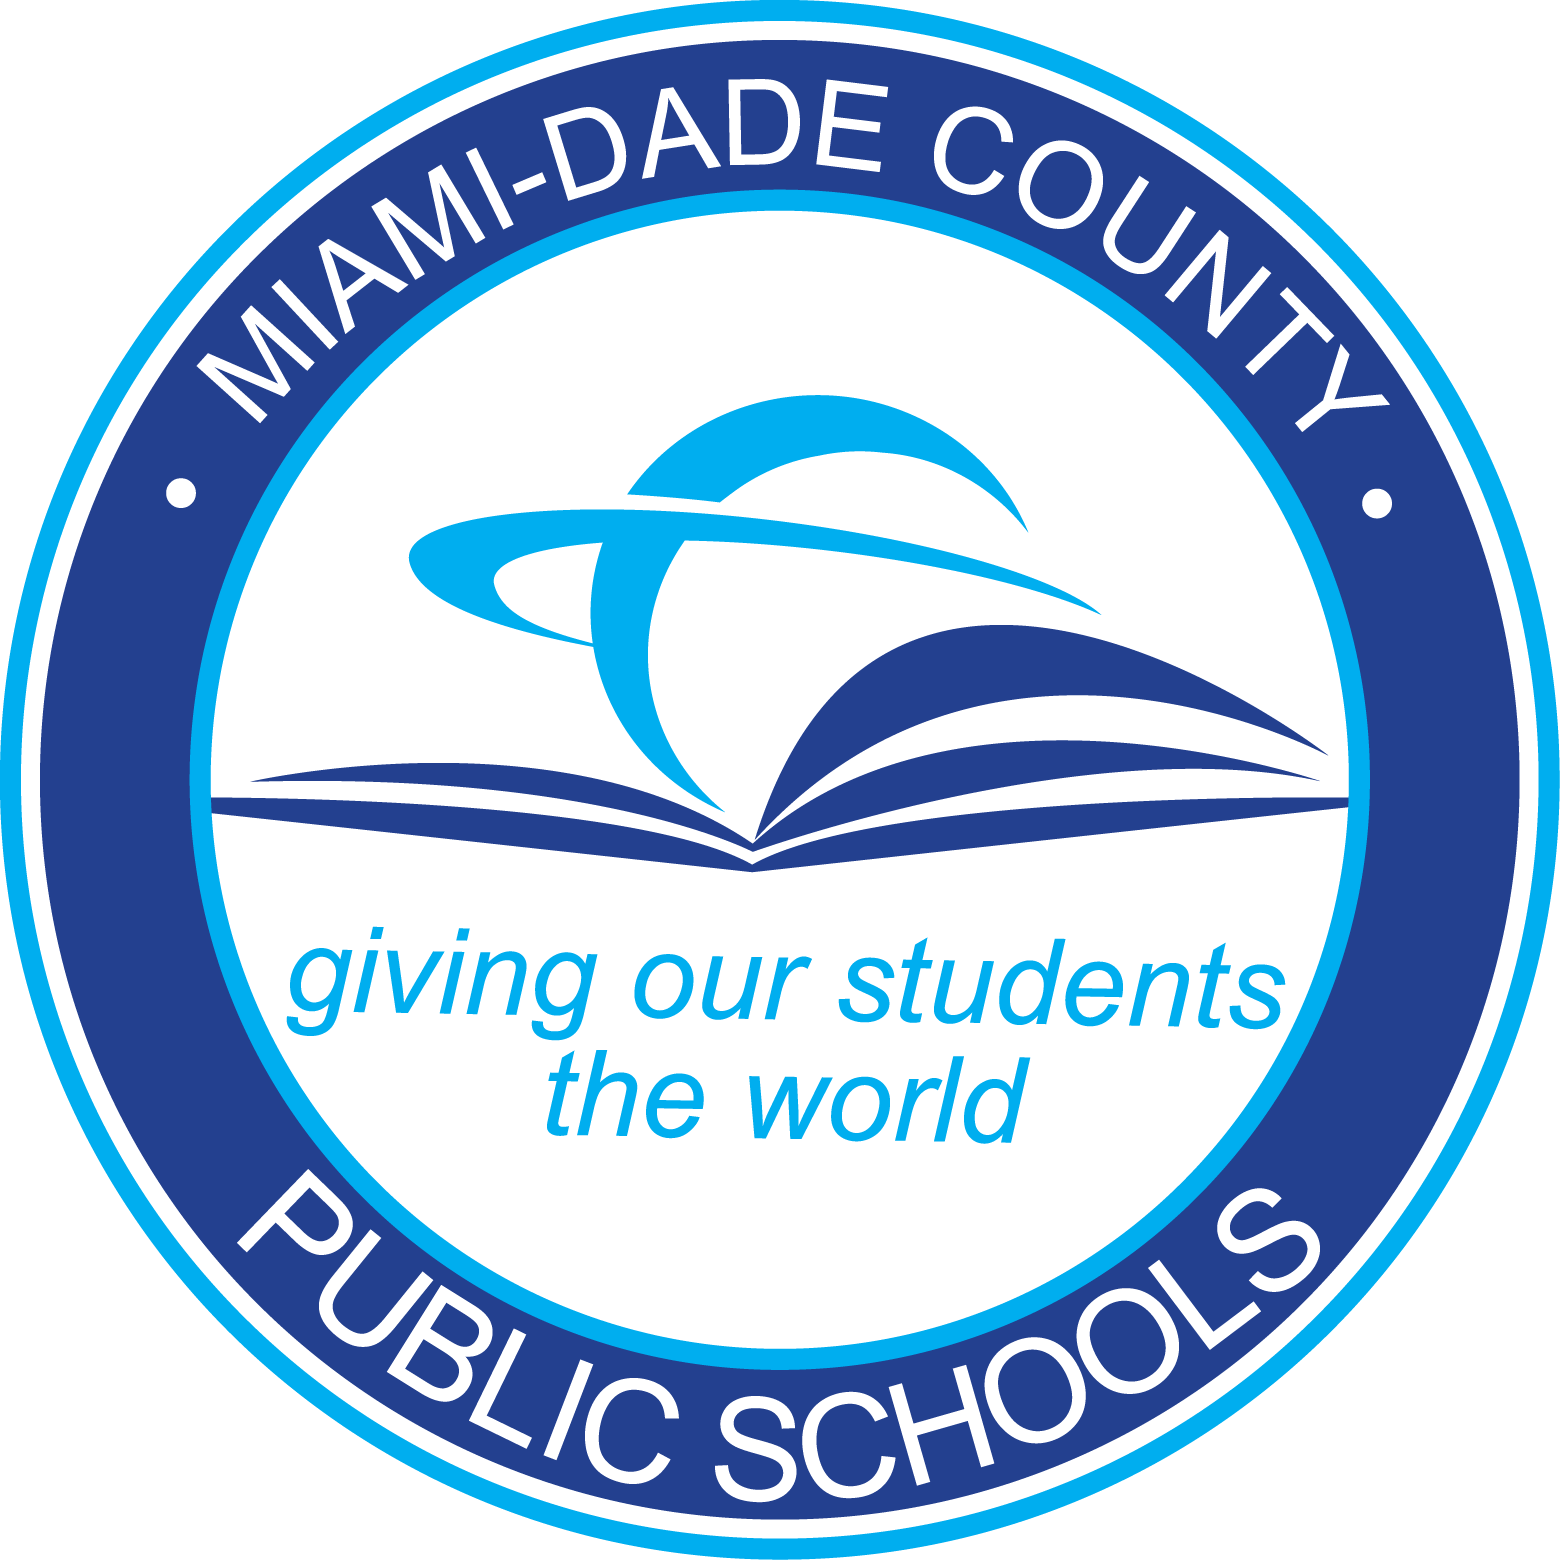 Miami-Dade Schools Investor Relations - Official Seal or Logo